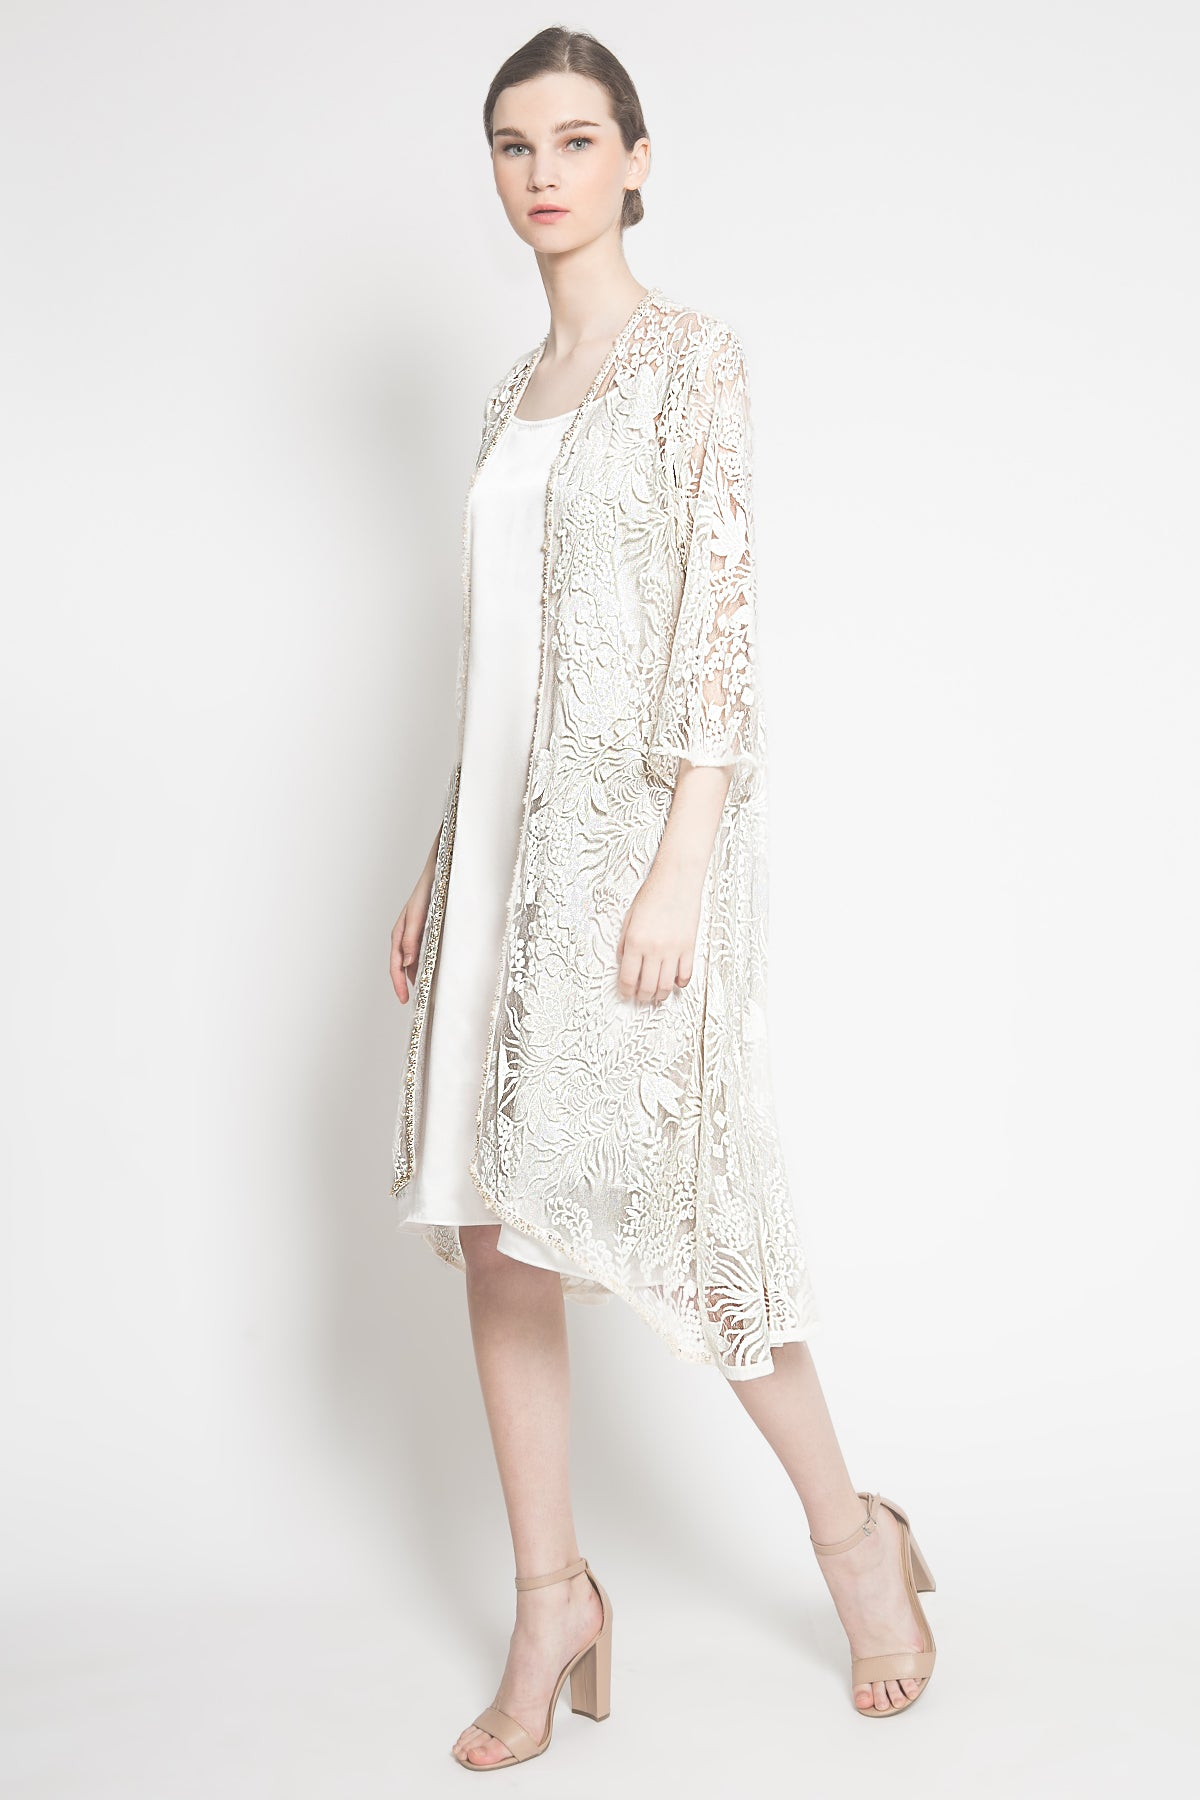 Ivy Outer Dress in White